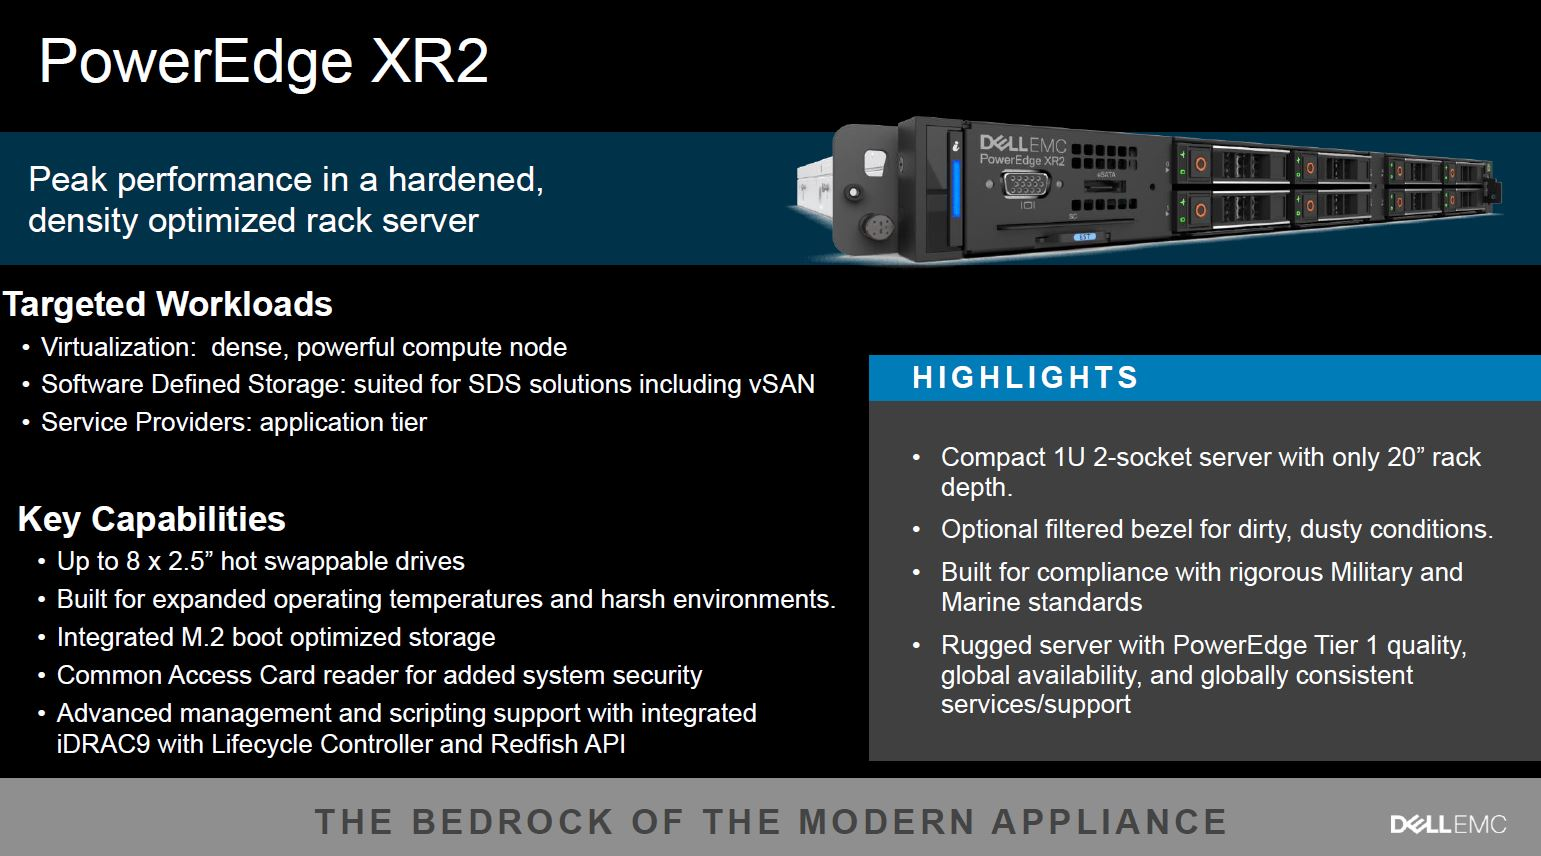 Dell Poweredge XR2 Rugged Server